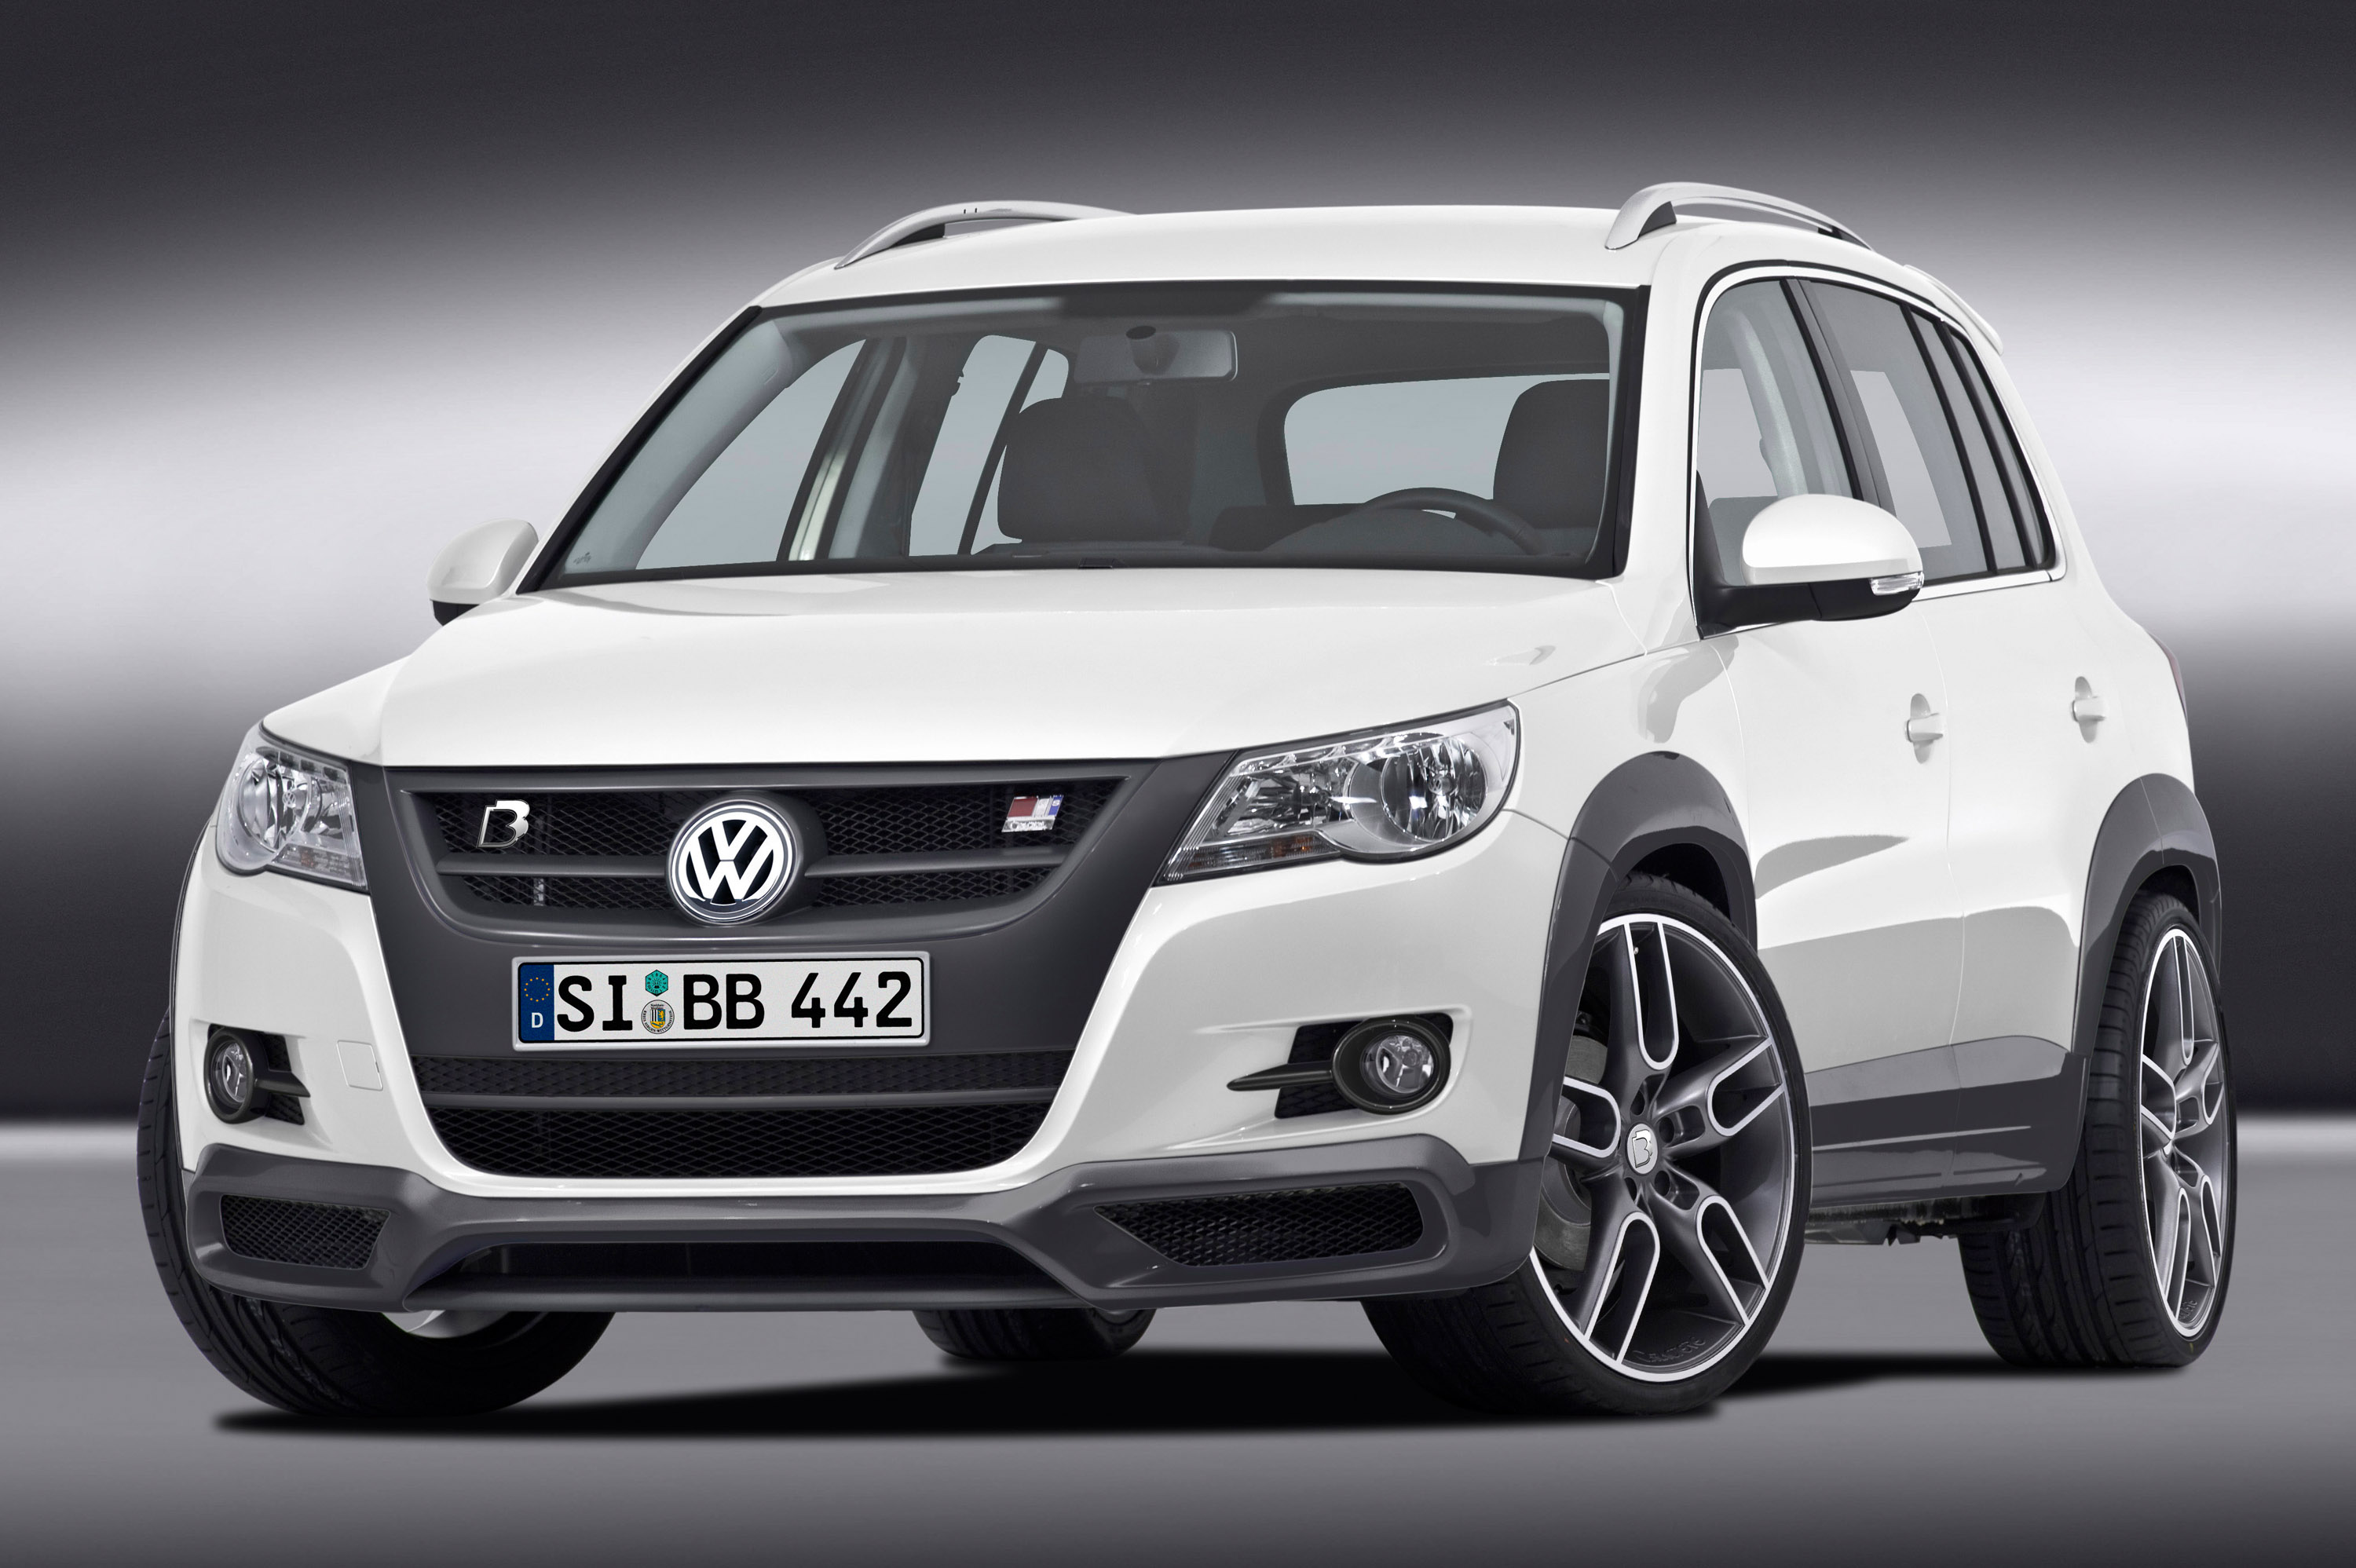 B b vw tiguan picture 2 of 6 adrenaline capsules pinterest cars volkswagen and amazing cars